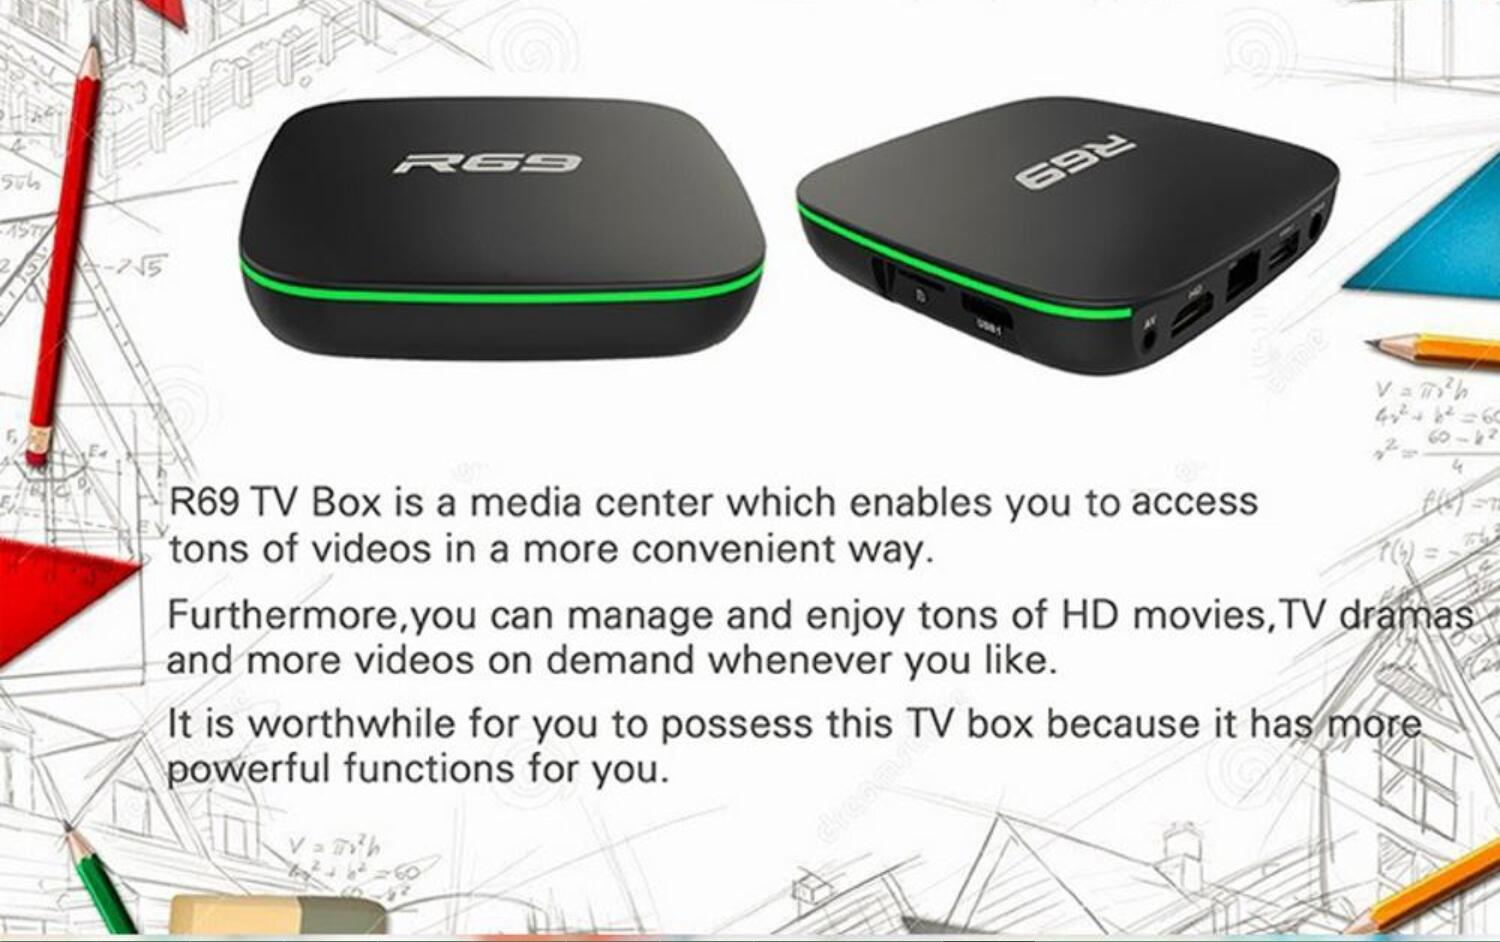 Android Tv Box 7 1 R69 S905w 2g 16g Internet Tv Set Top Box With Android  7 1 World Max Tv Box - Buy Iptv Set Top Box,Cable Tv Set Top Box,Android  Iptv